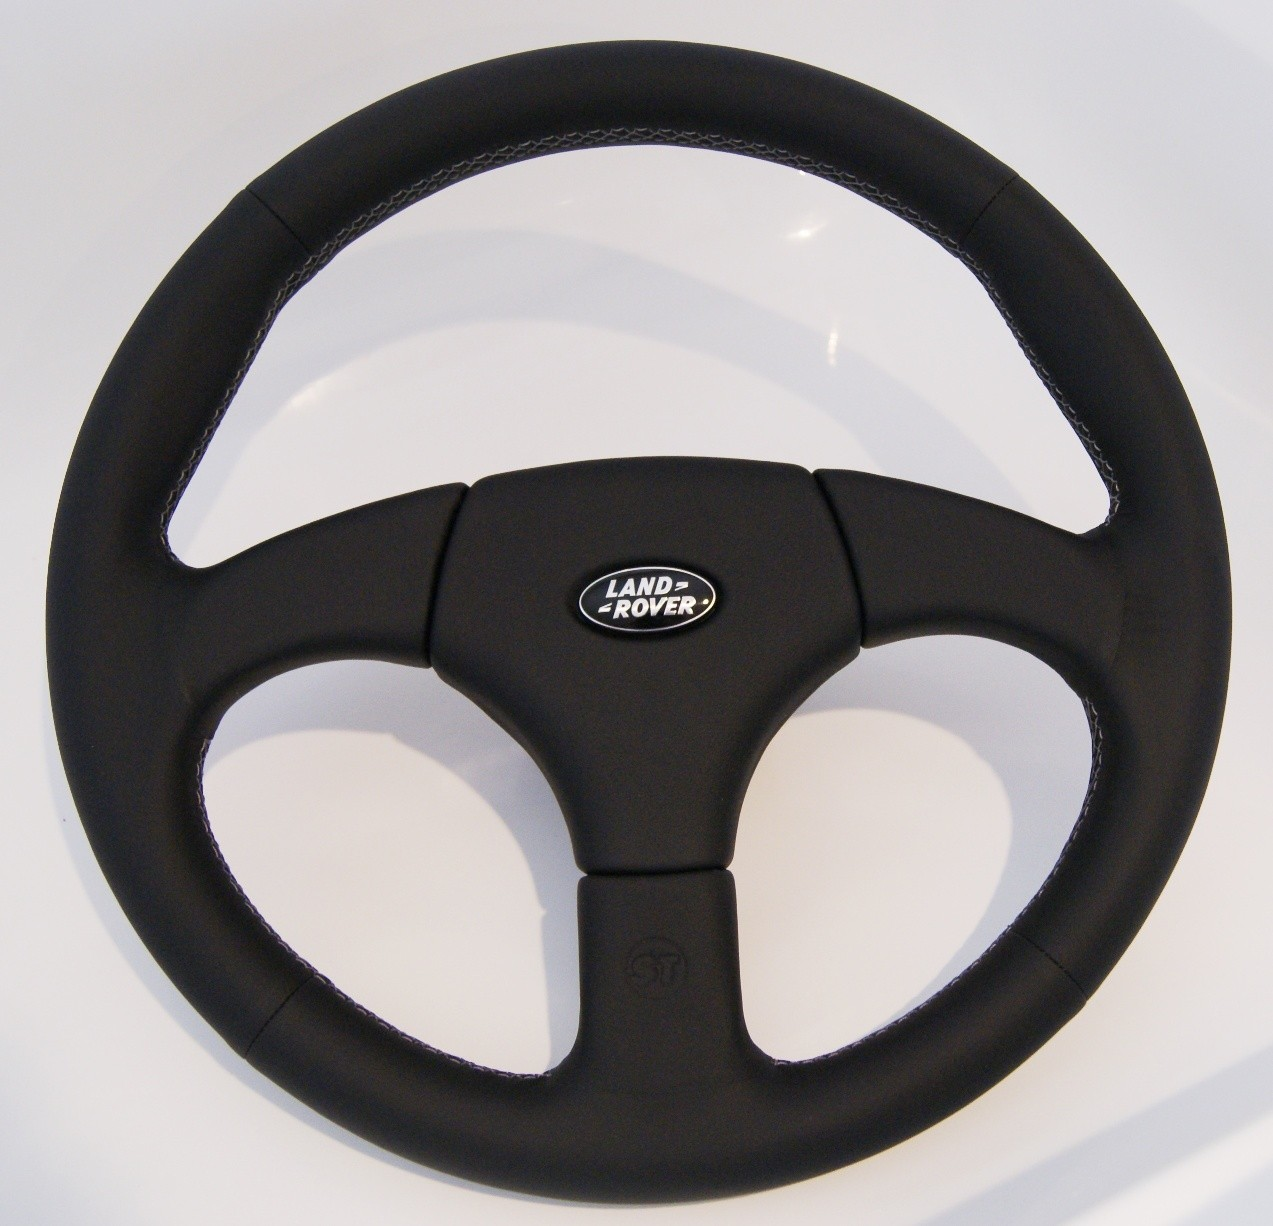 STARTECH sport steering wheel, 360mm genuine leather black, adapter, cover with Land Rover logo for all Defender up to 2016